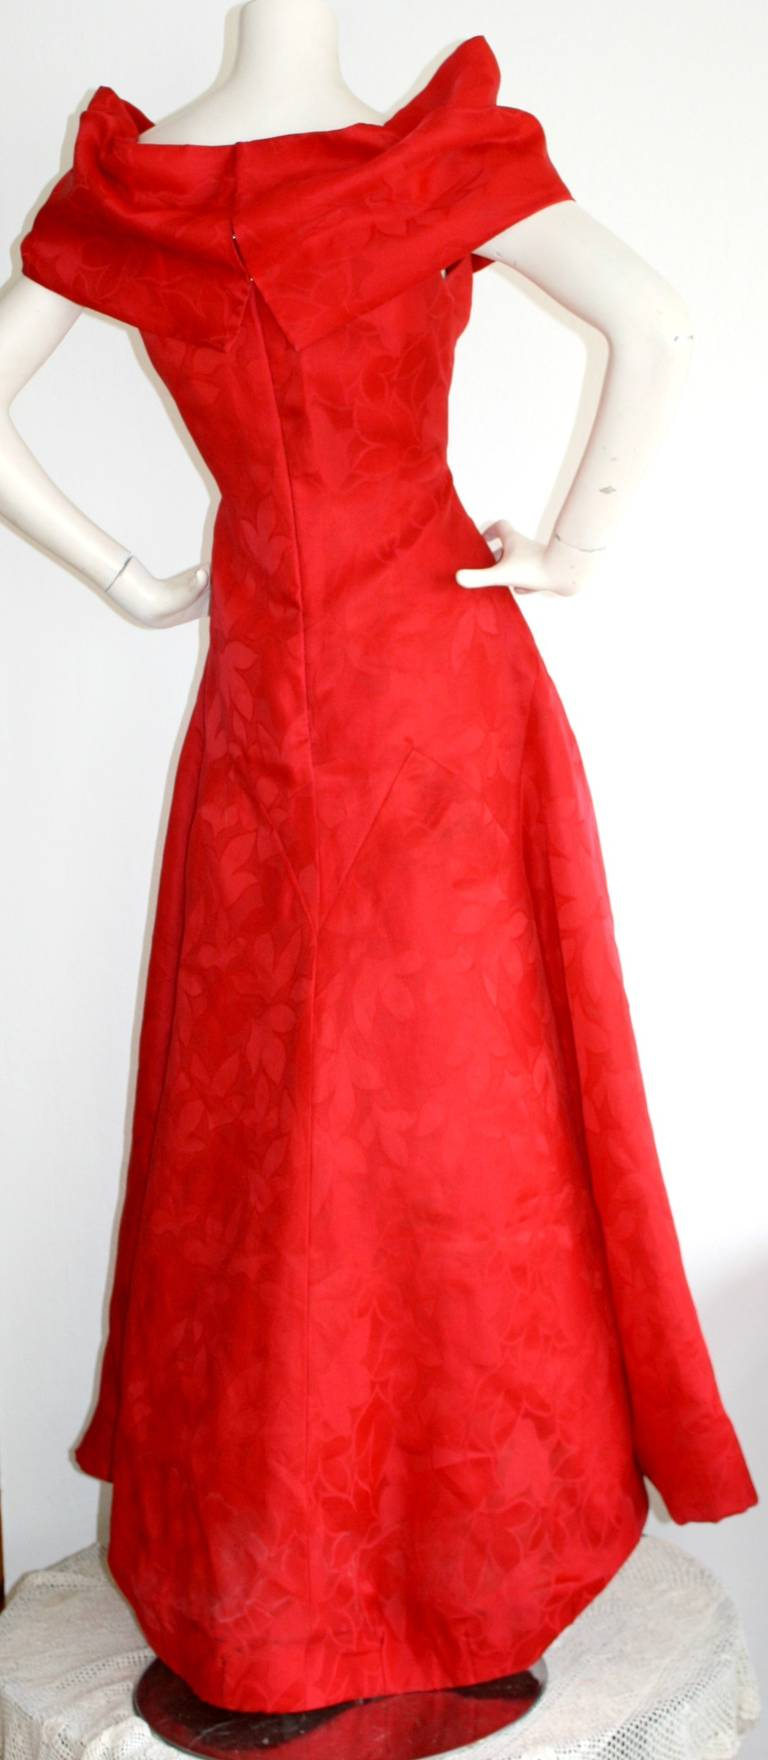 Arnold Scassi Vintage Bright Red Ball Gown 3